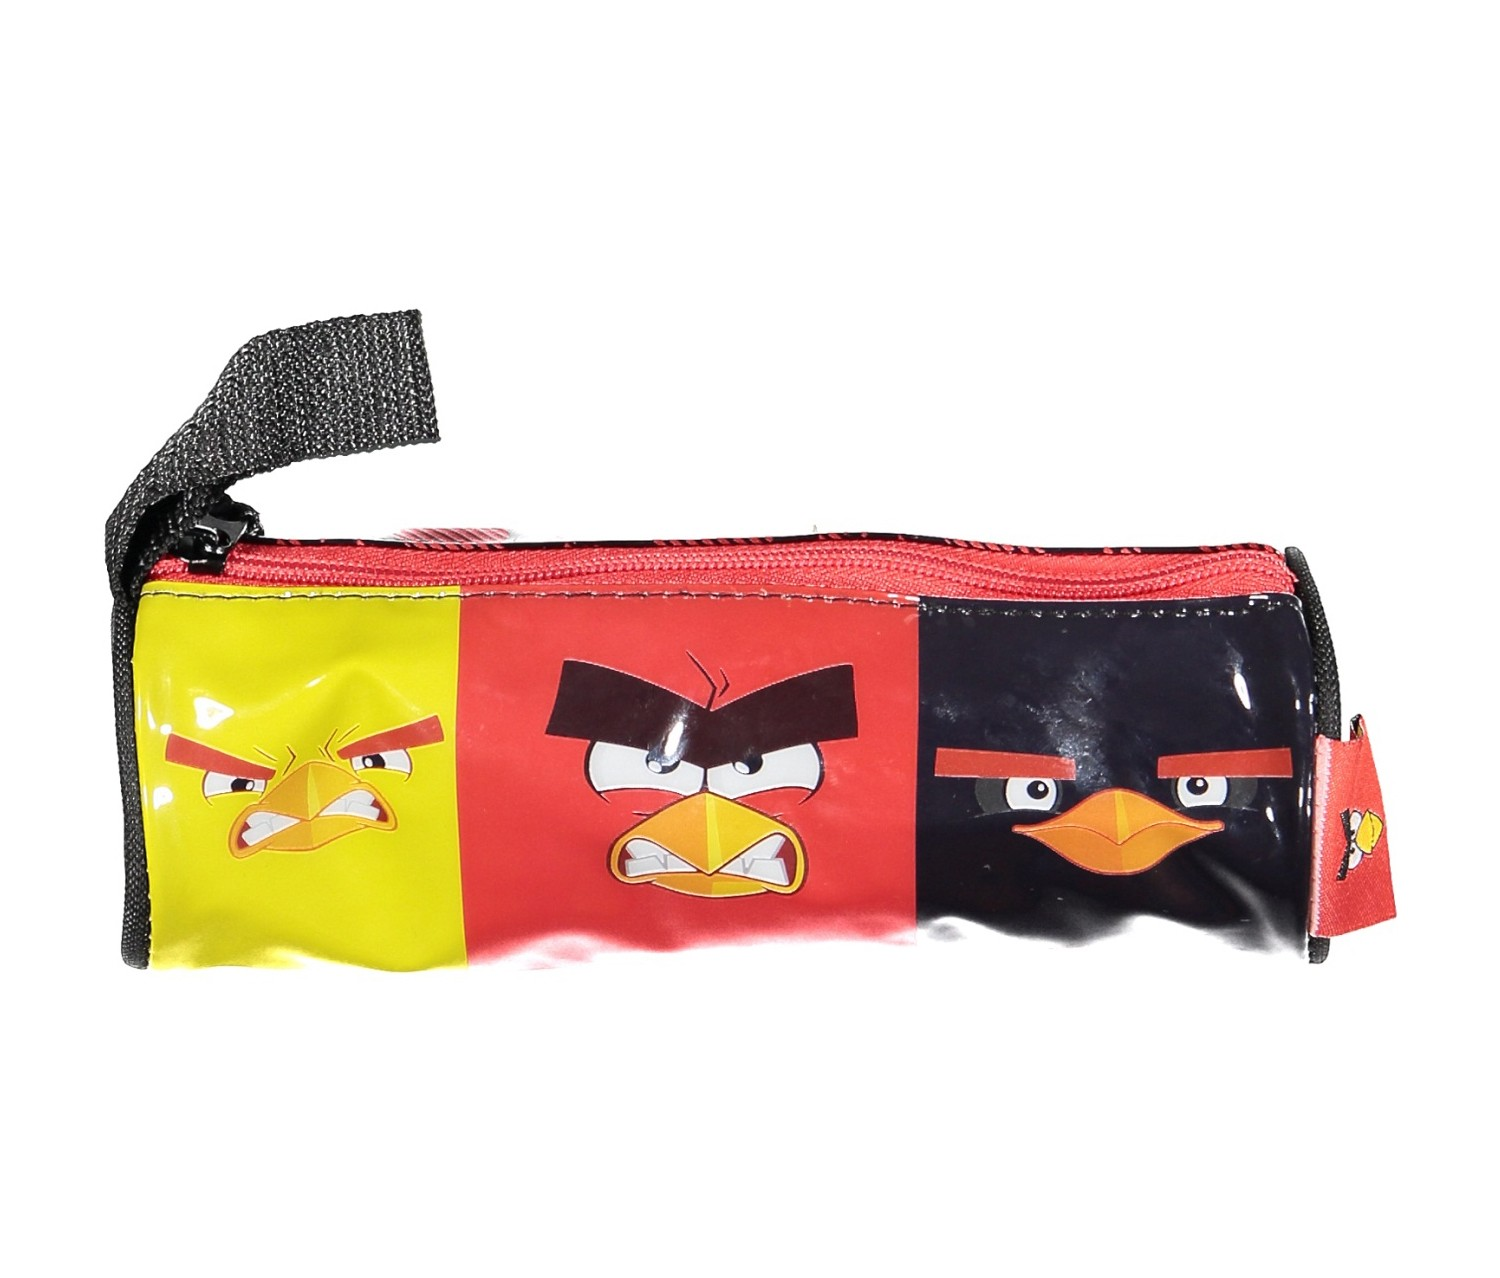 Pencil Bag, Red/Black/Yellow